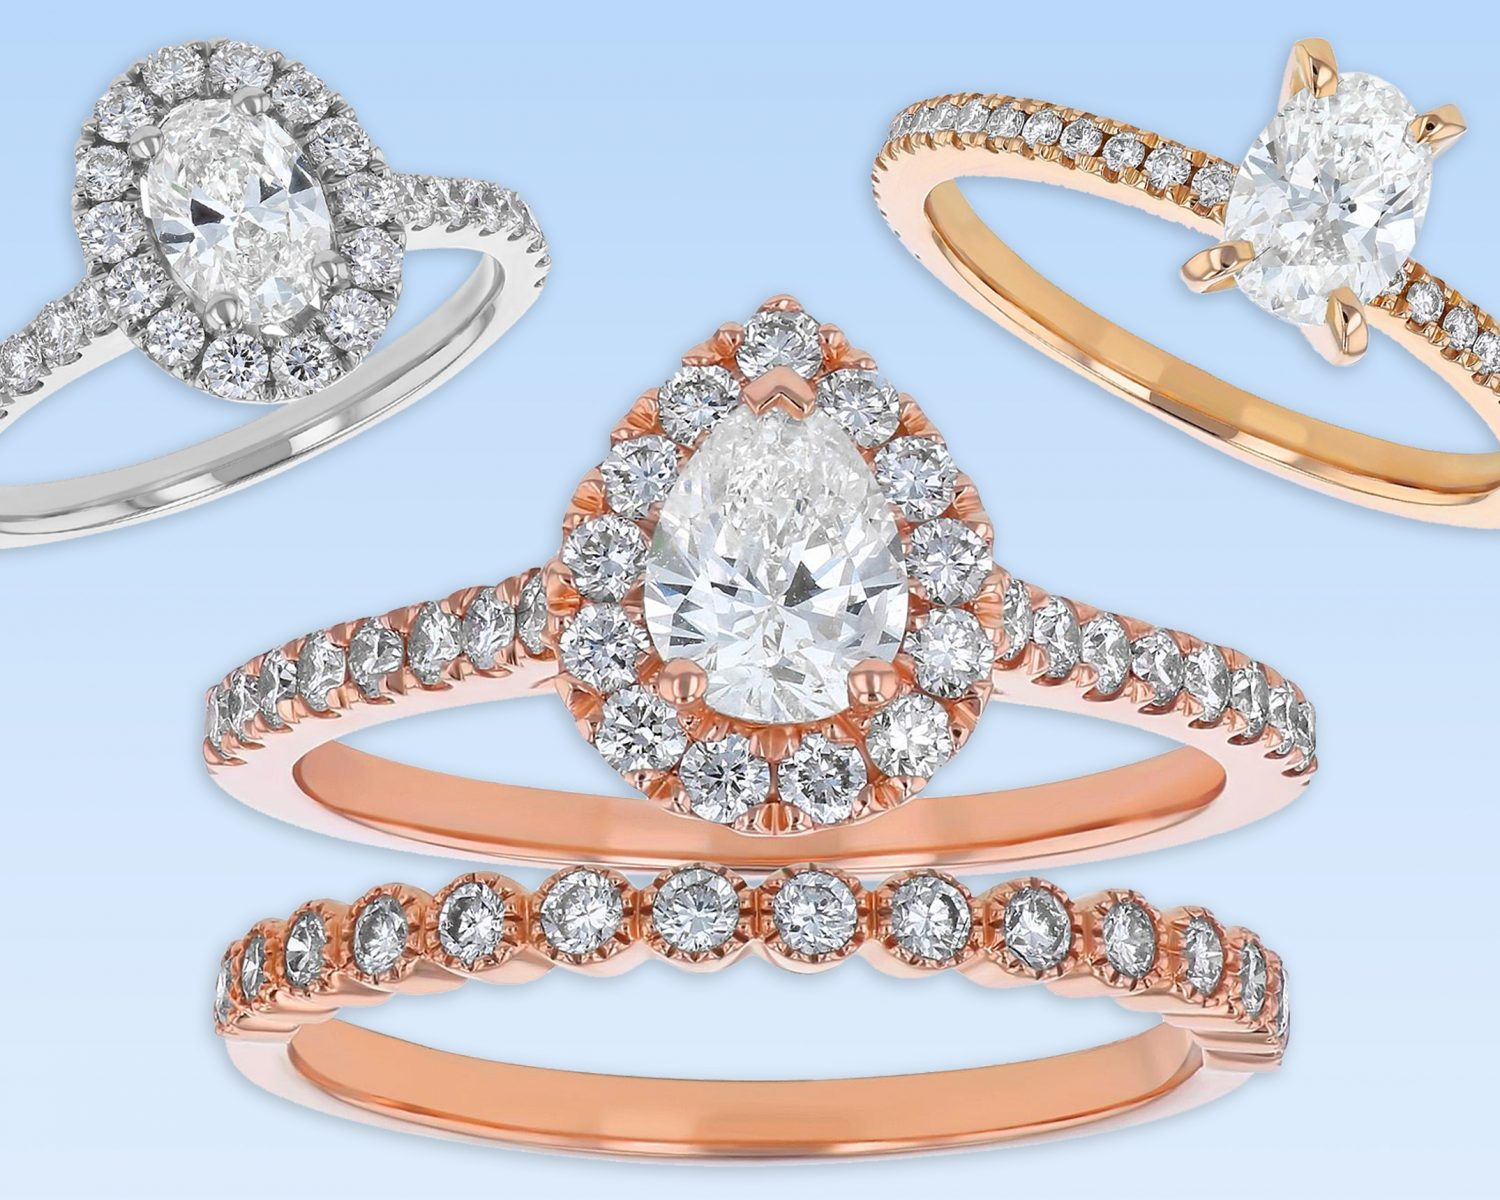 Bridal Collection Of Enement Rings